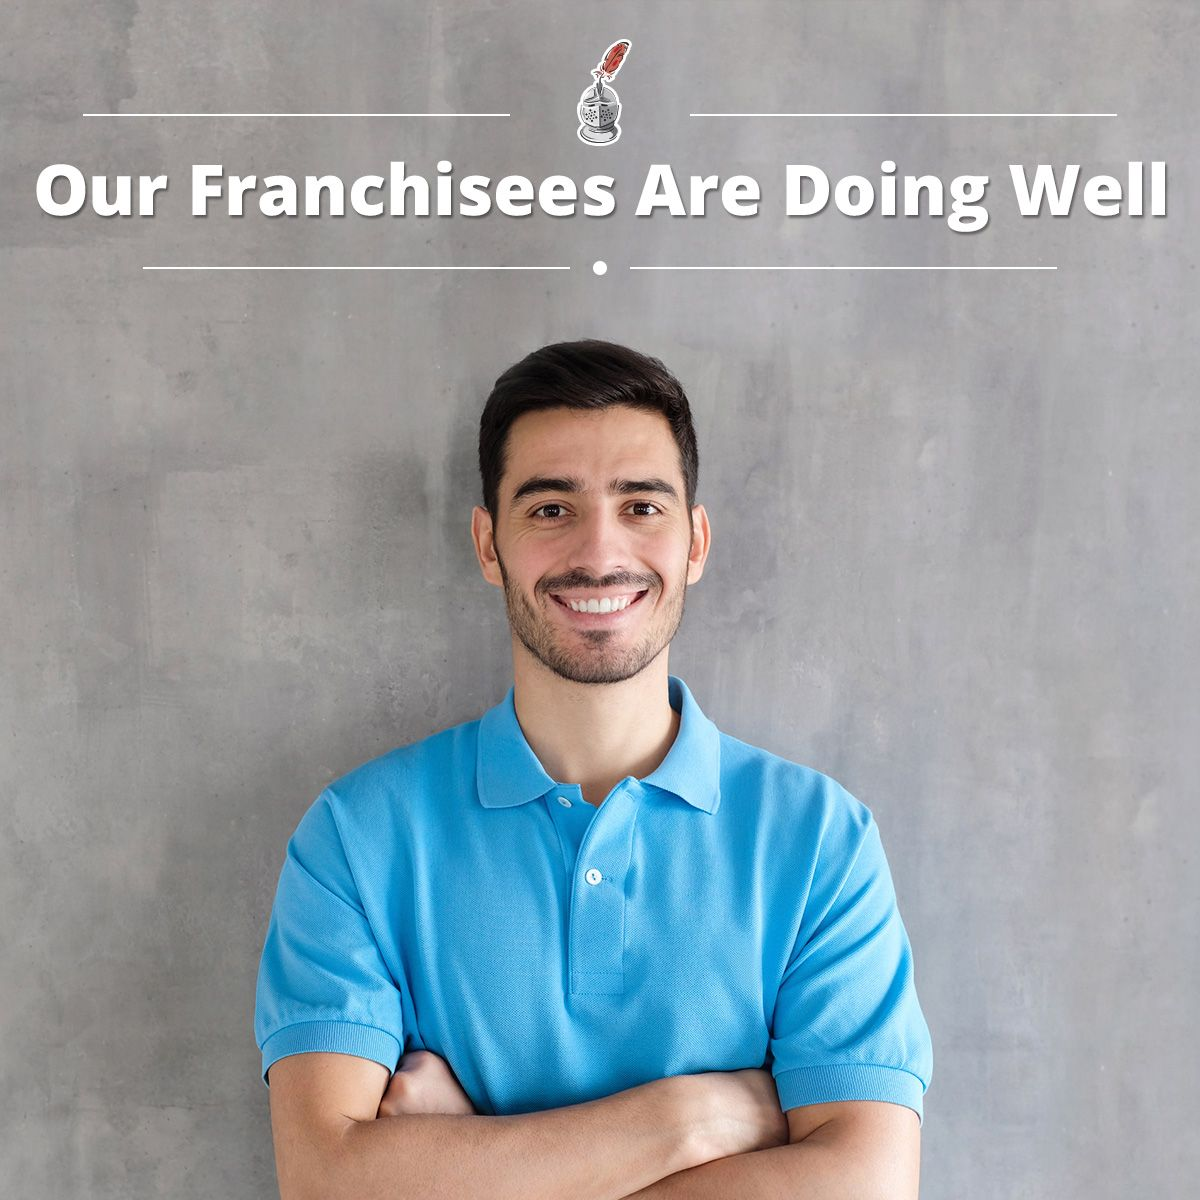 Our Franchisees Are Doing Well